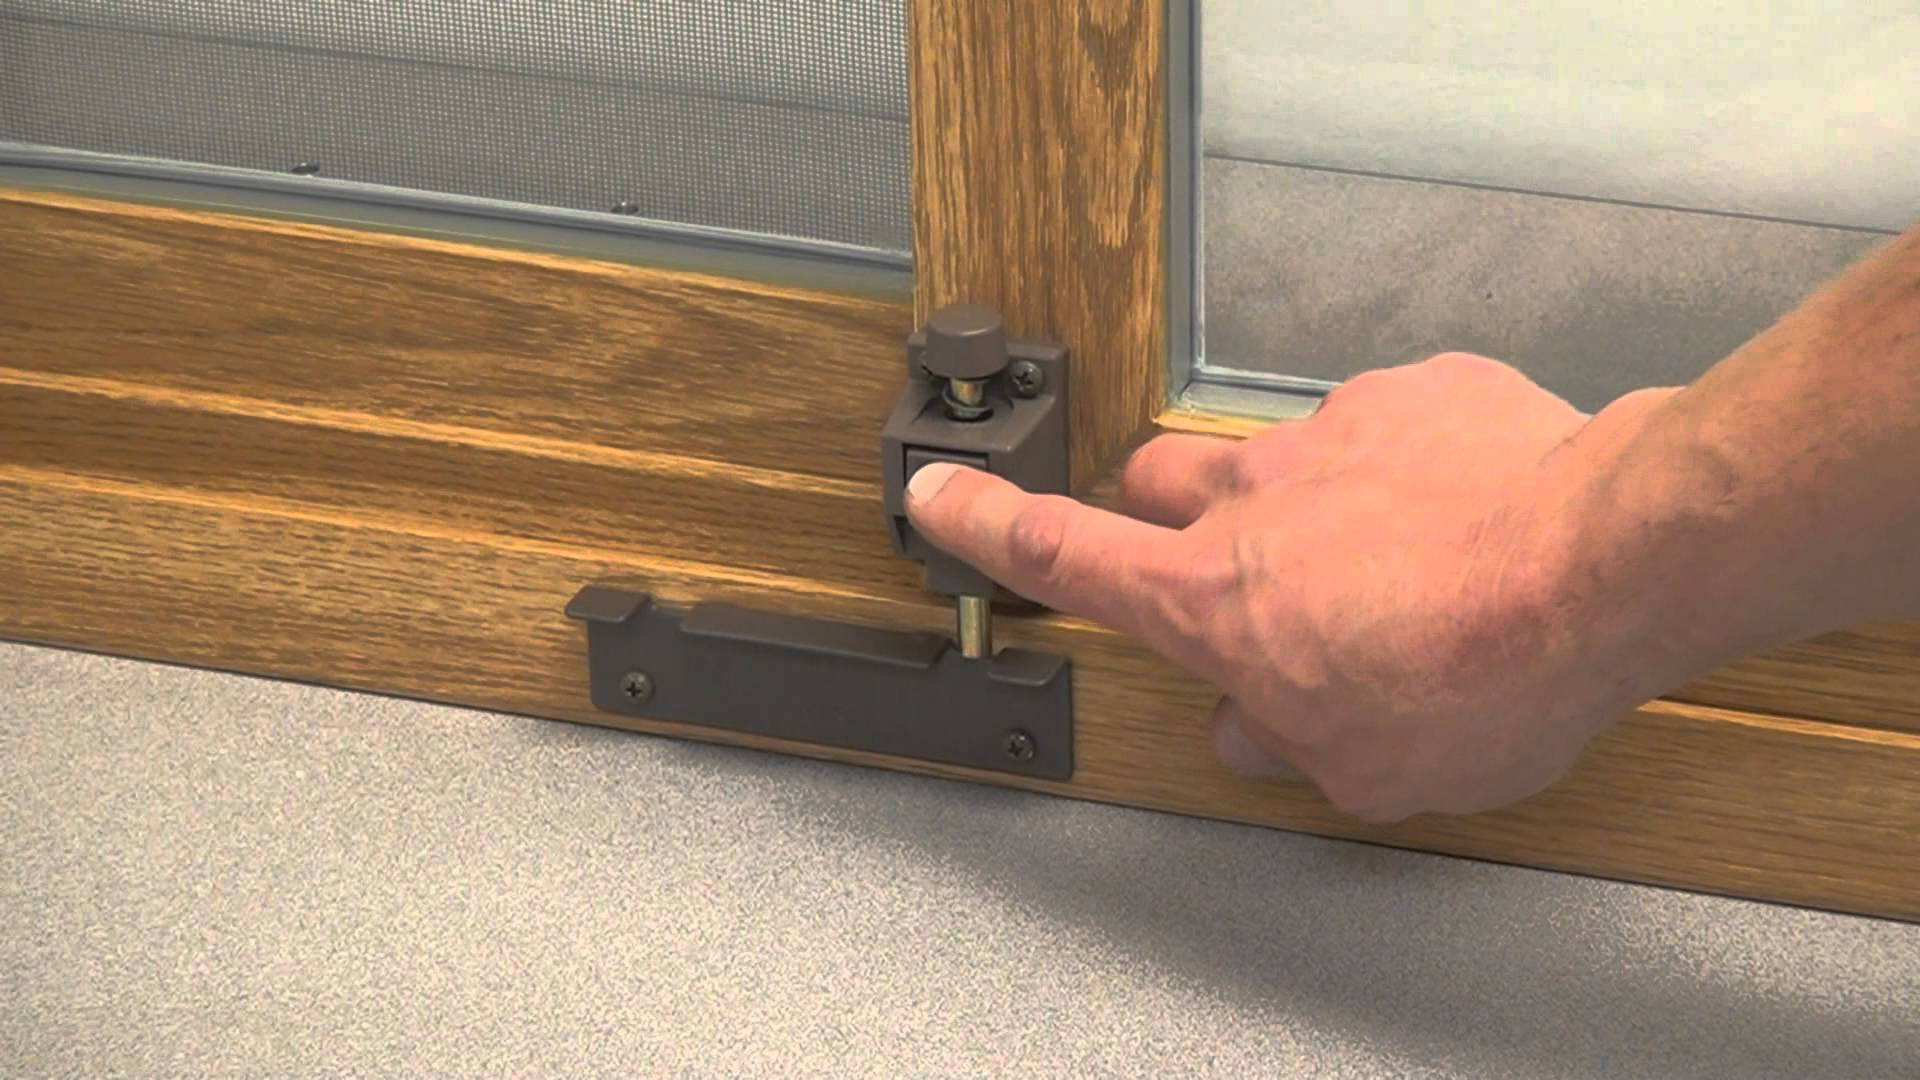 Quick and effective ways of upgrading your home security